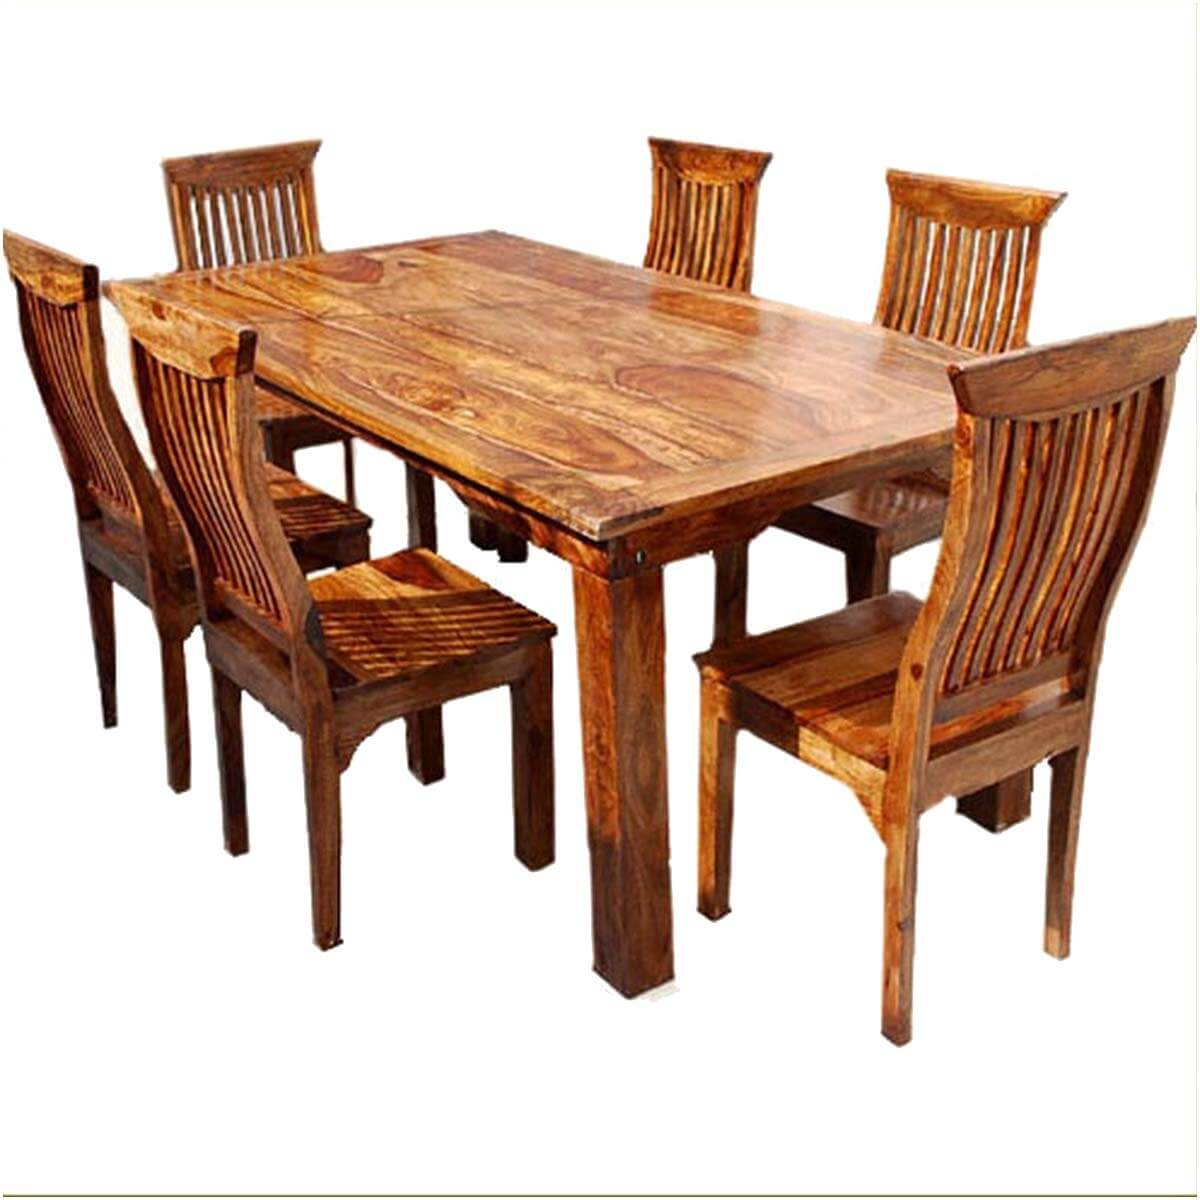 Dallas ranch solid wood rustic dining table chairs hutch set for Wood dining room furniture